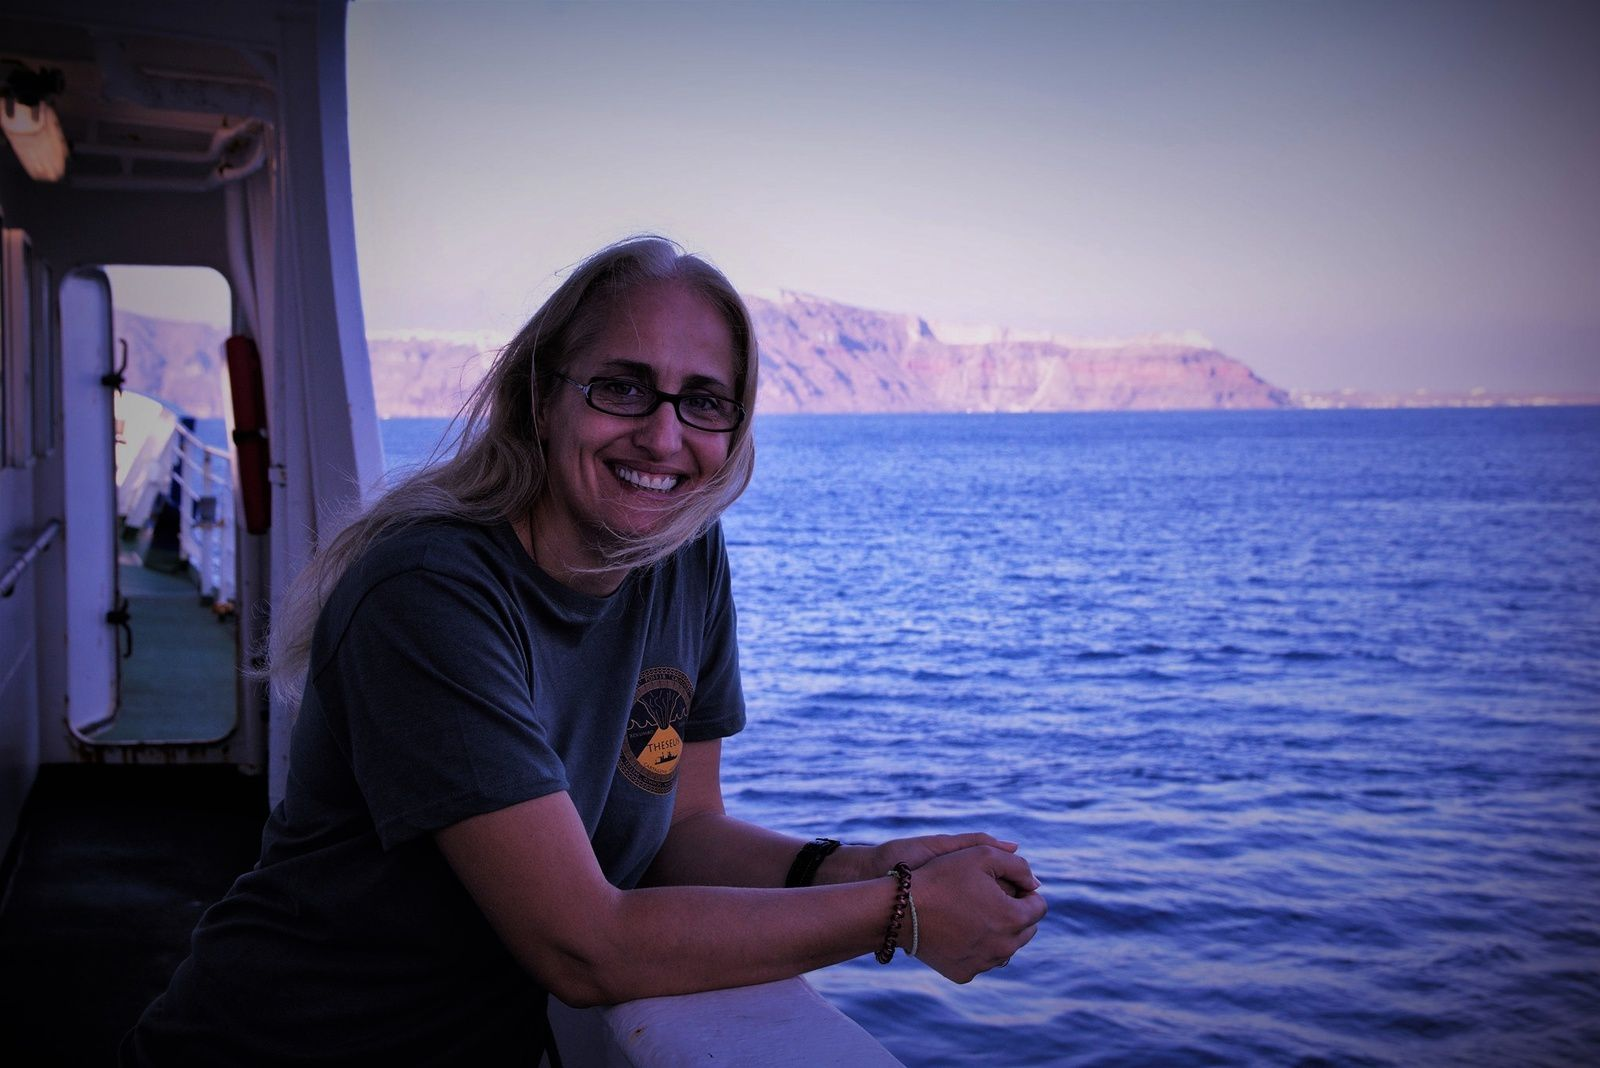 Santorini - a special thanks to Dr. Evi Nomikou, who helped me prepare for my trip to Santorini, despite his hard work. - photo © Evi Nomikou